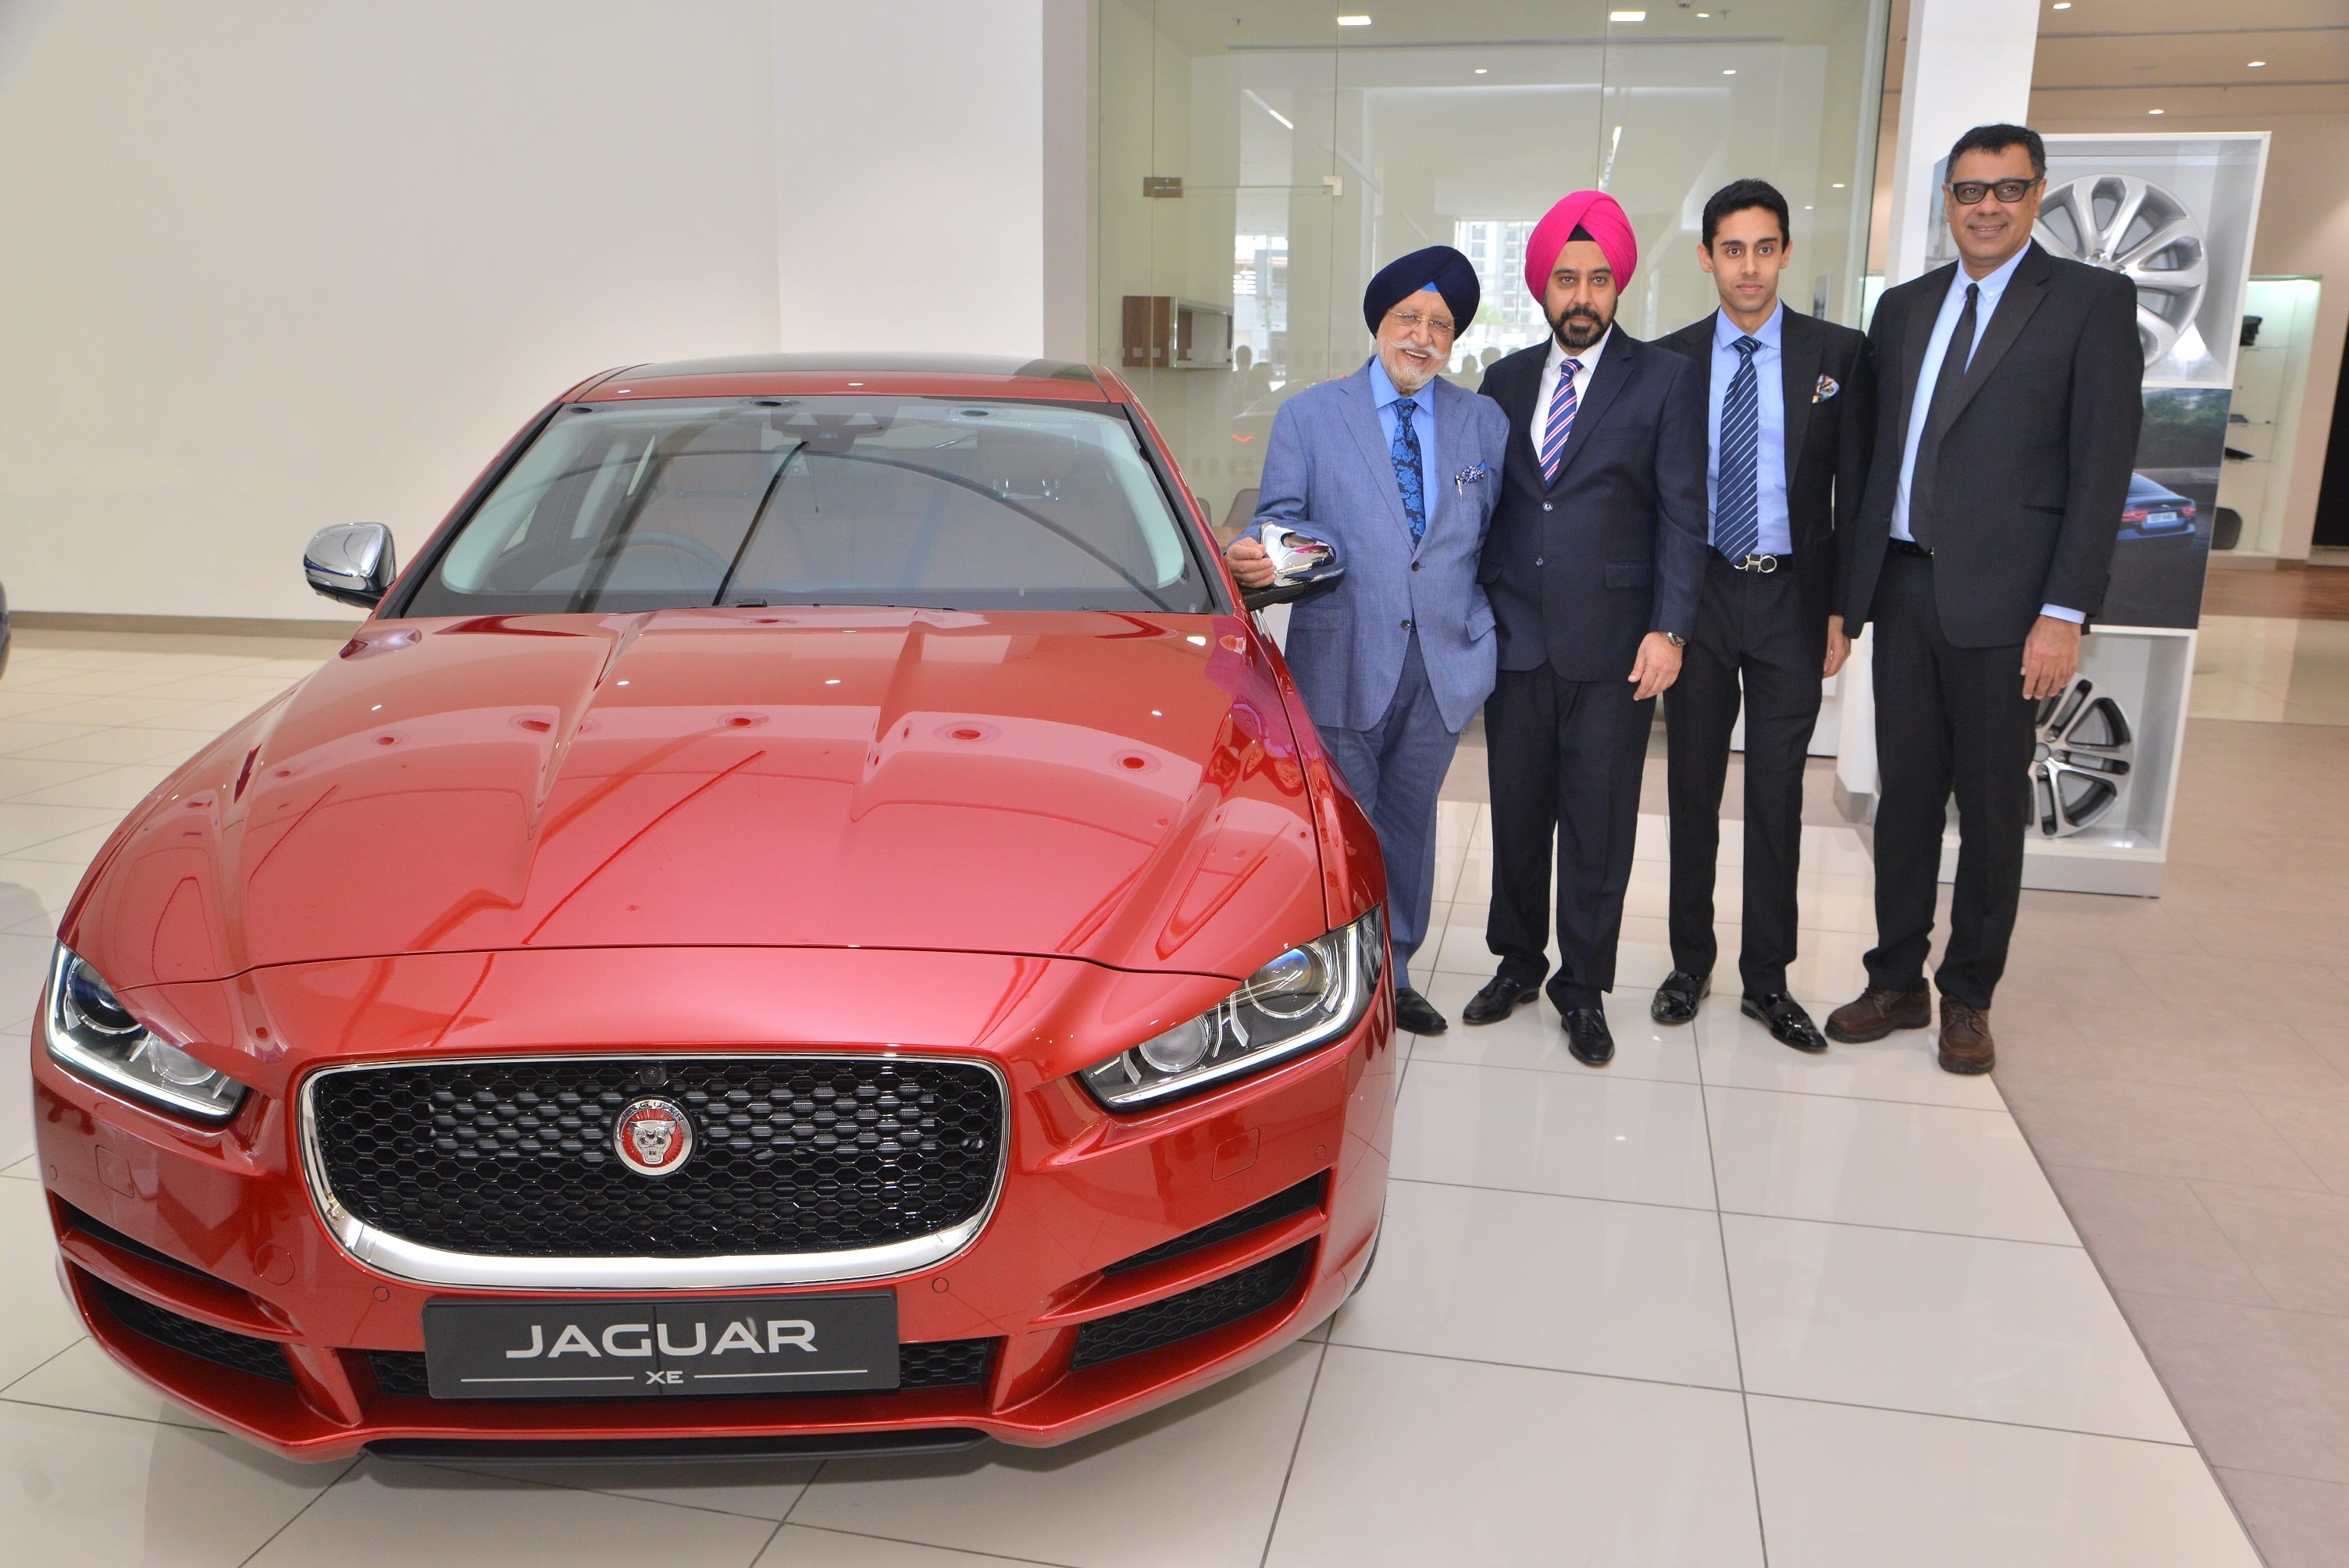 JLR expands its footprint in NCR with inauguration of its fourth dealership